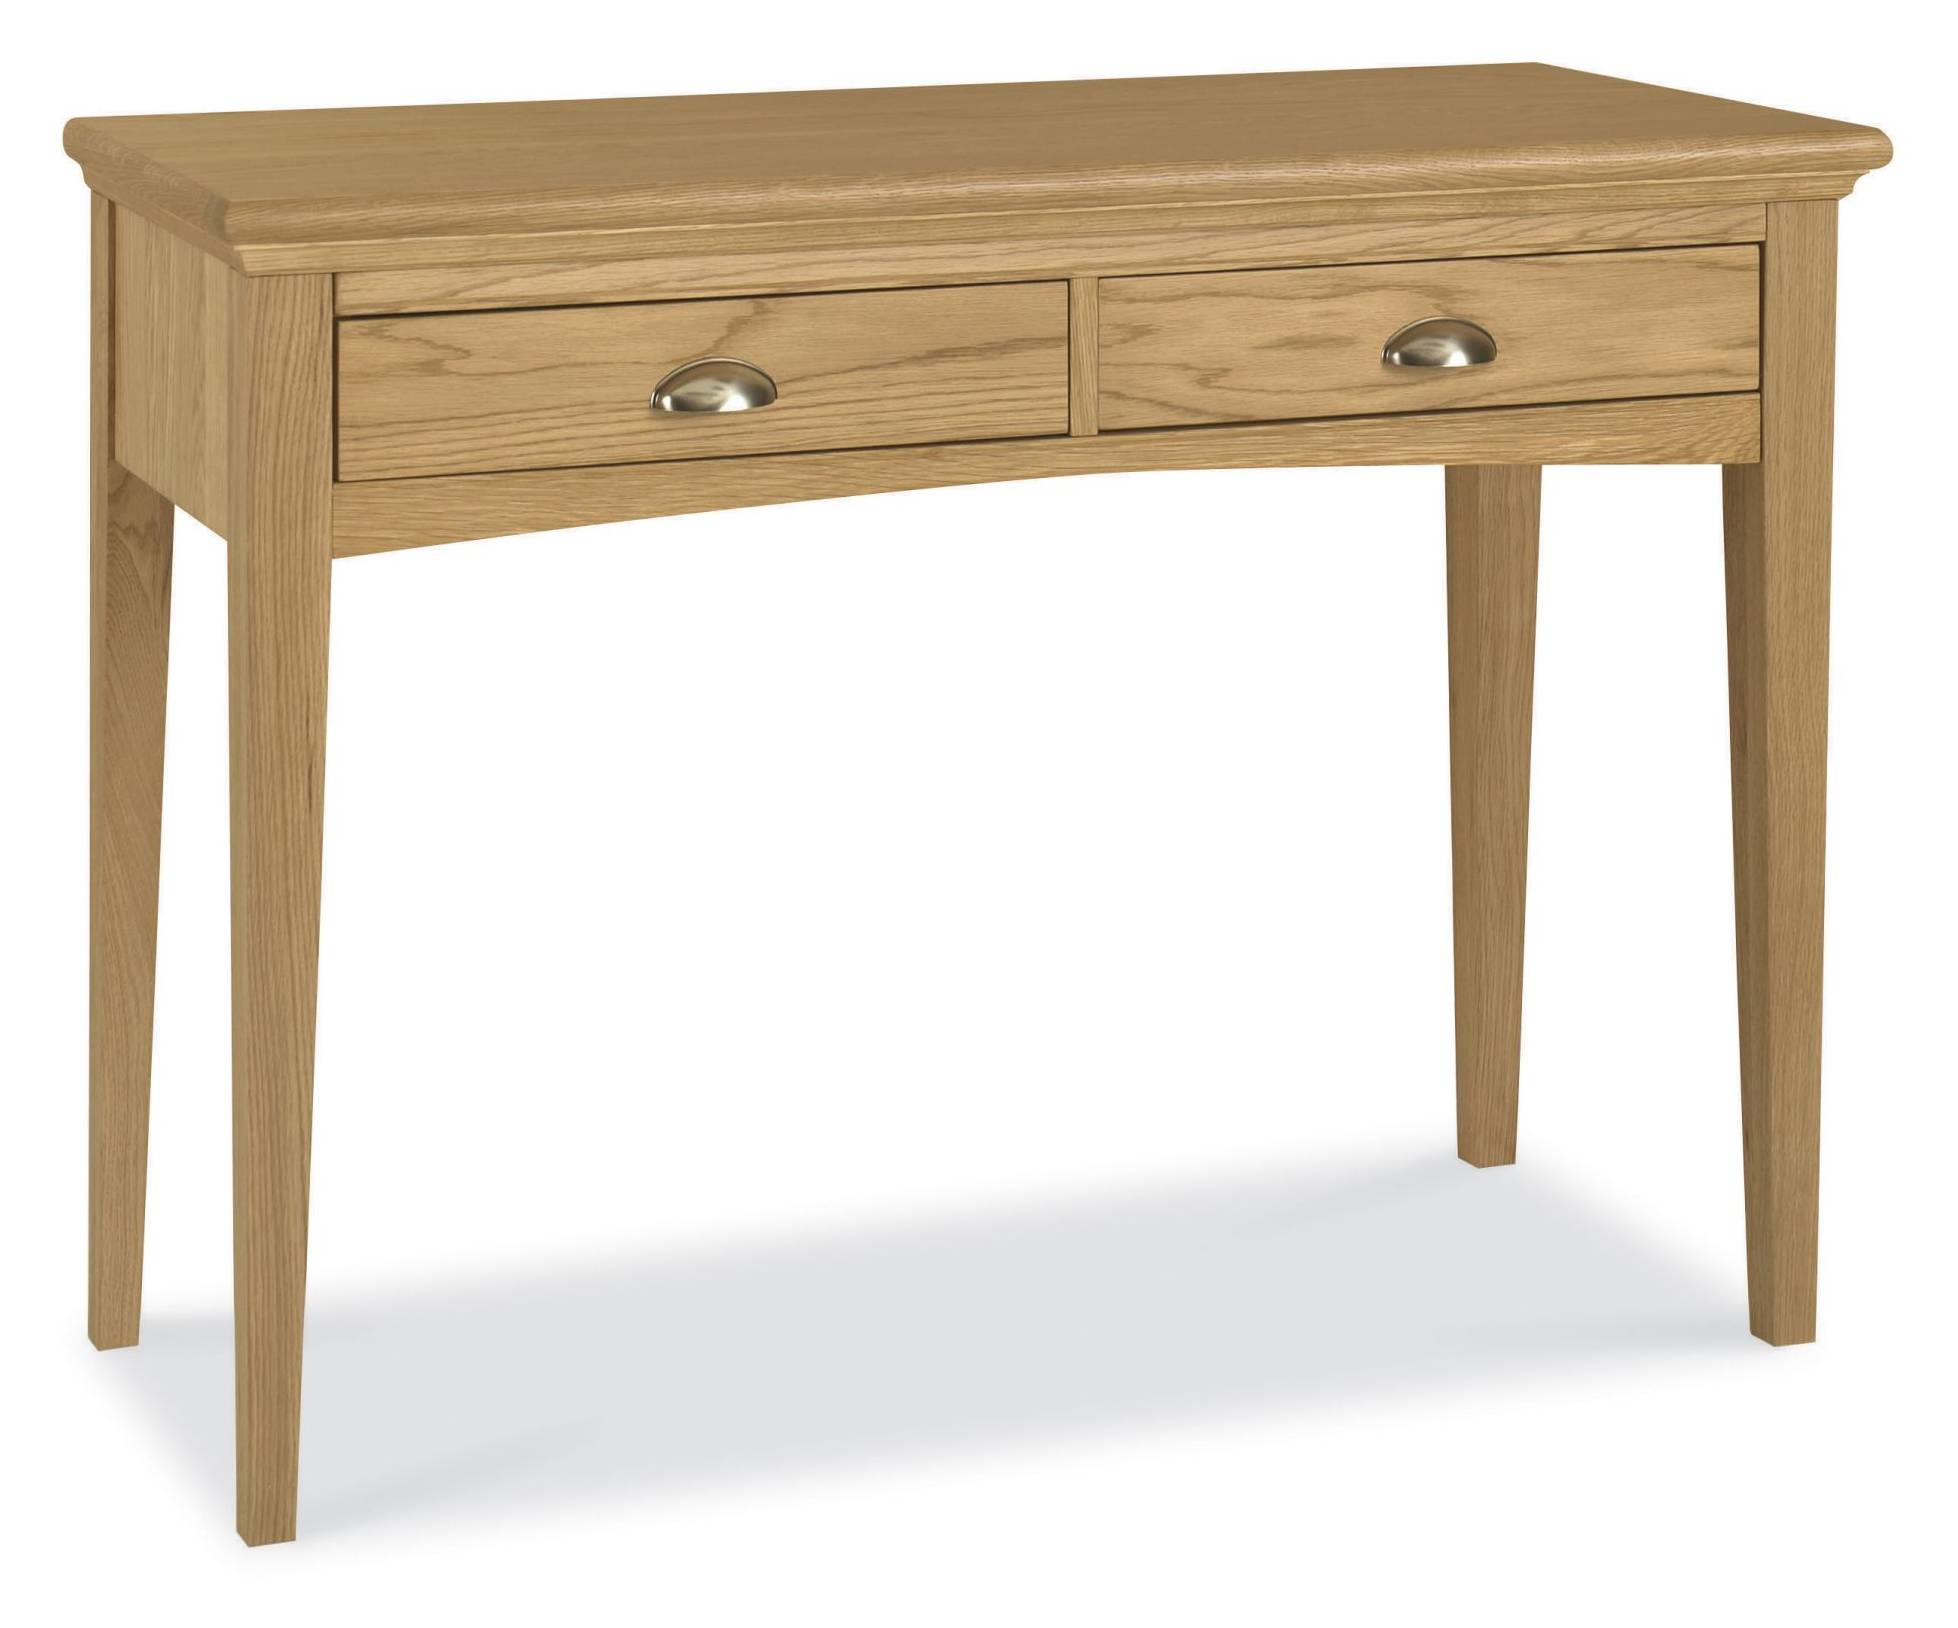 Fairford oak dressing table bedroom furniture hills for 90cm dressing table